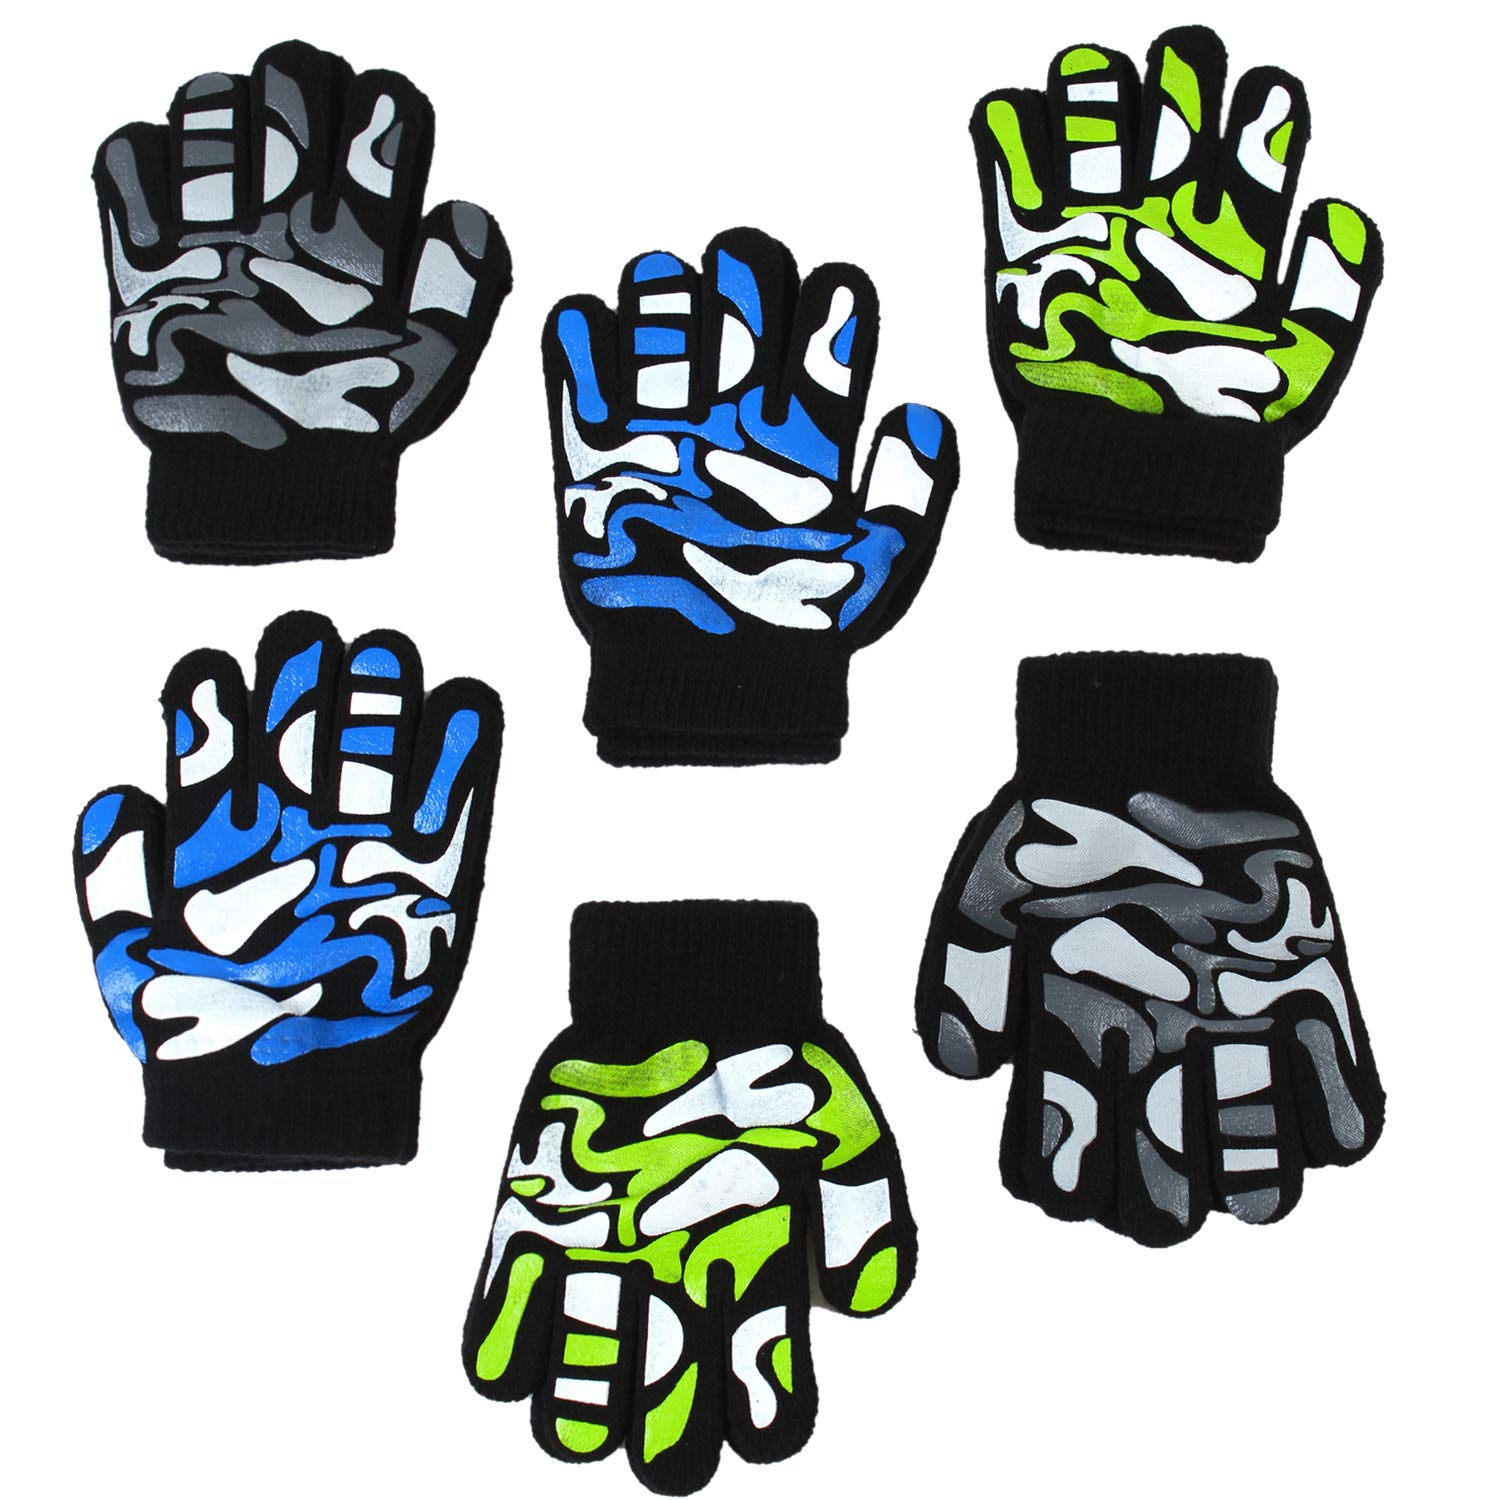 Cooraby 12 Pairs Kids Warm Magic Gloves Teens Winter Stretchy Knit Gloves Boys Girls Knit Gloves